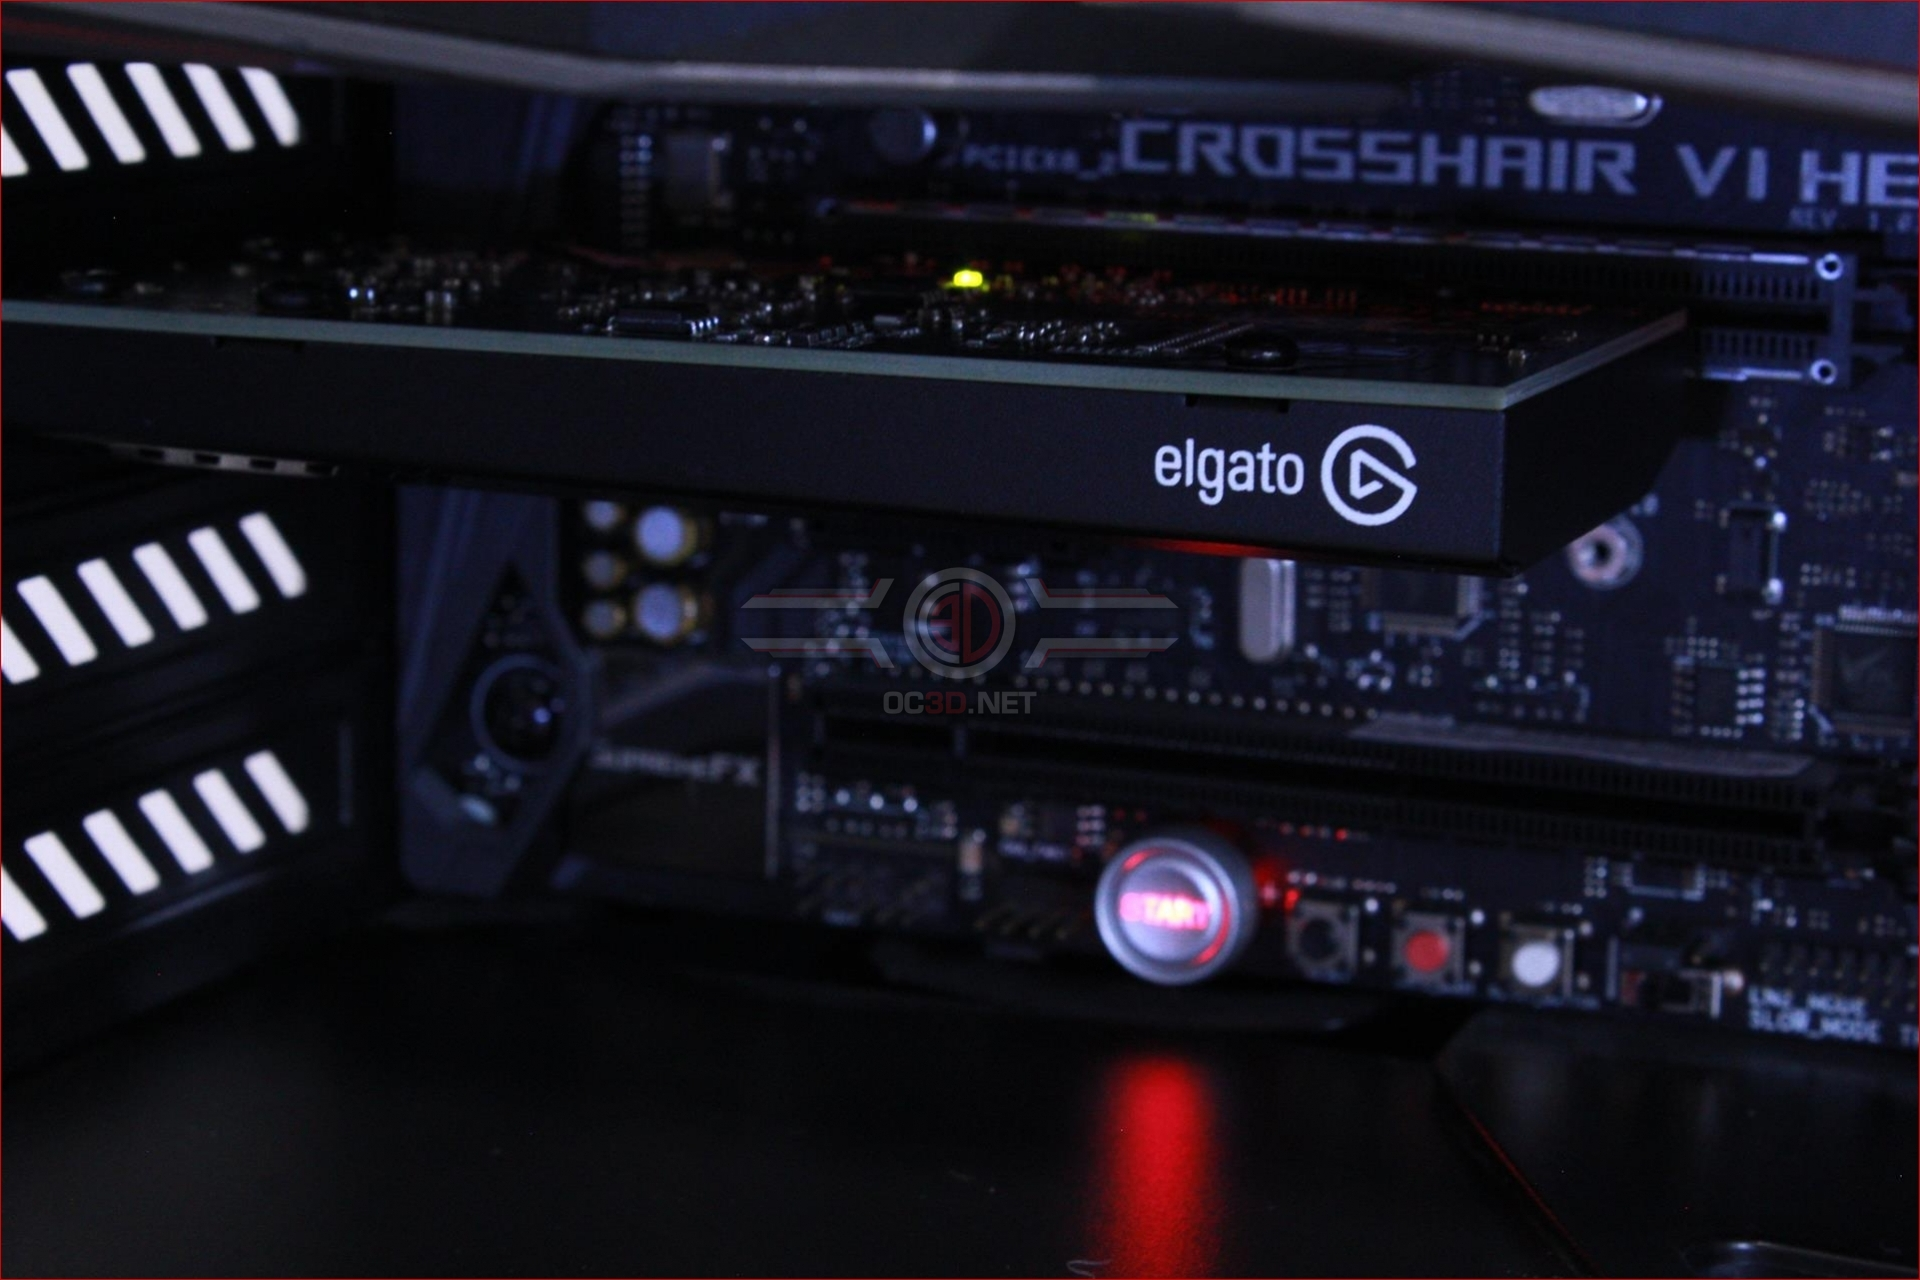 Elgato 4K60 Pro MK 2 HDR capture card Review | Up Close